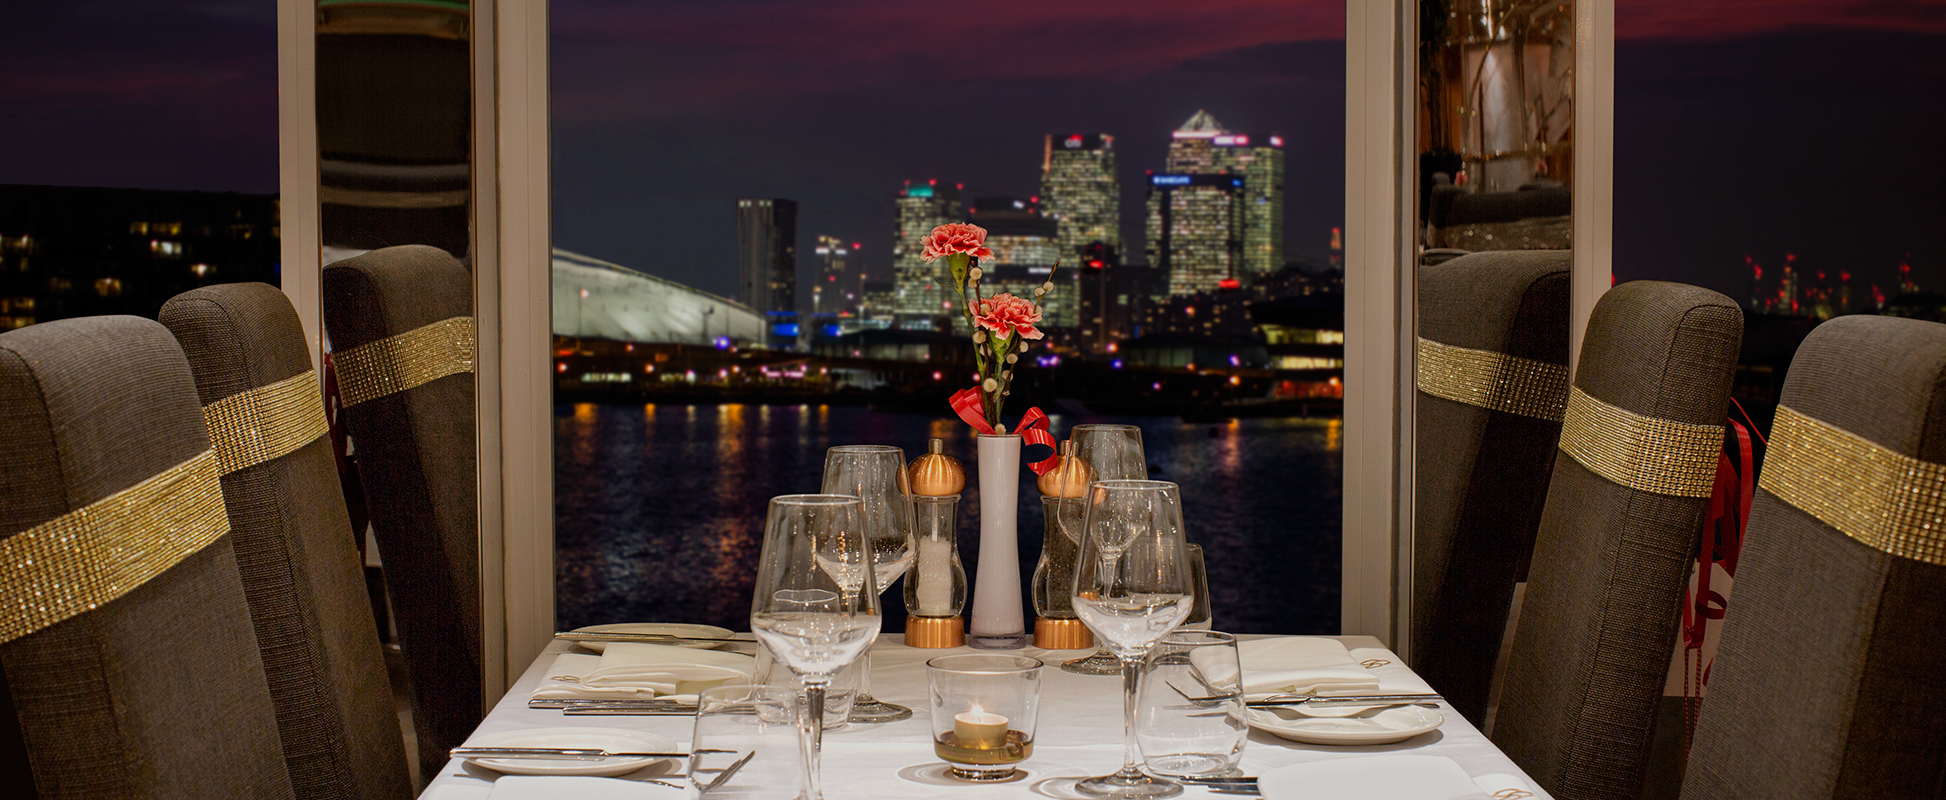 restaurants near o2 arena